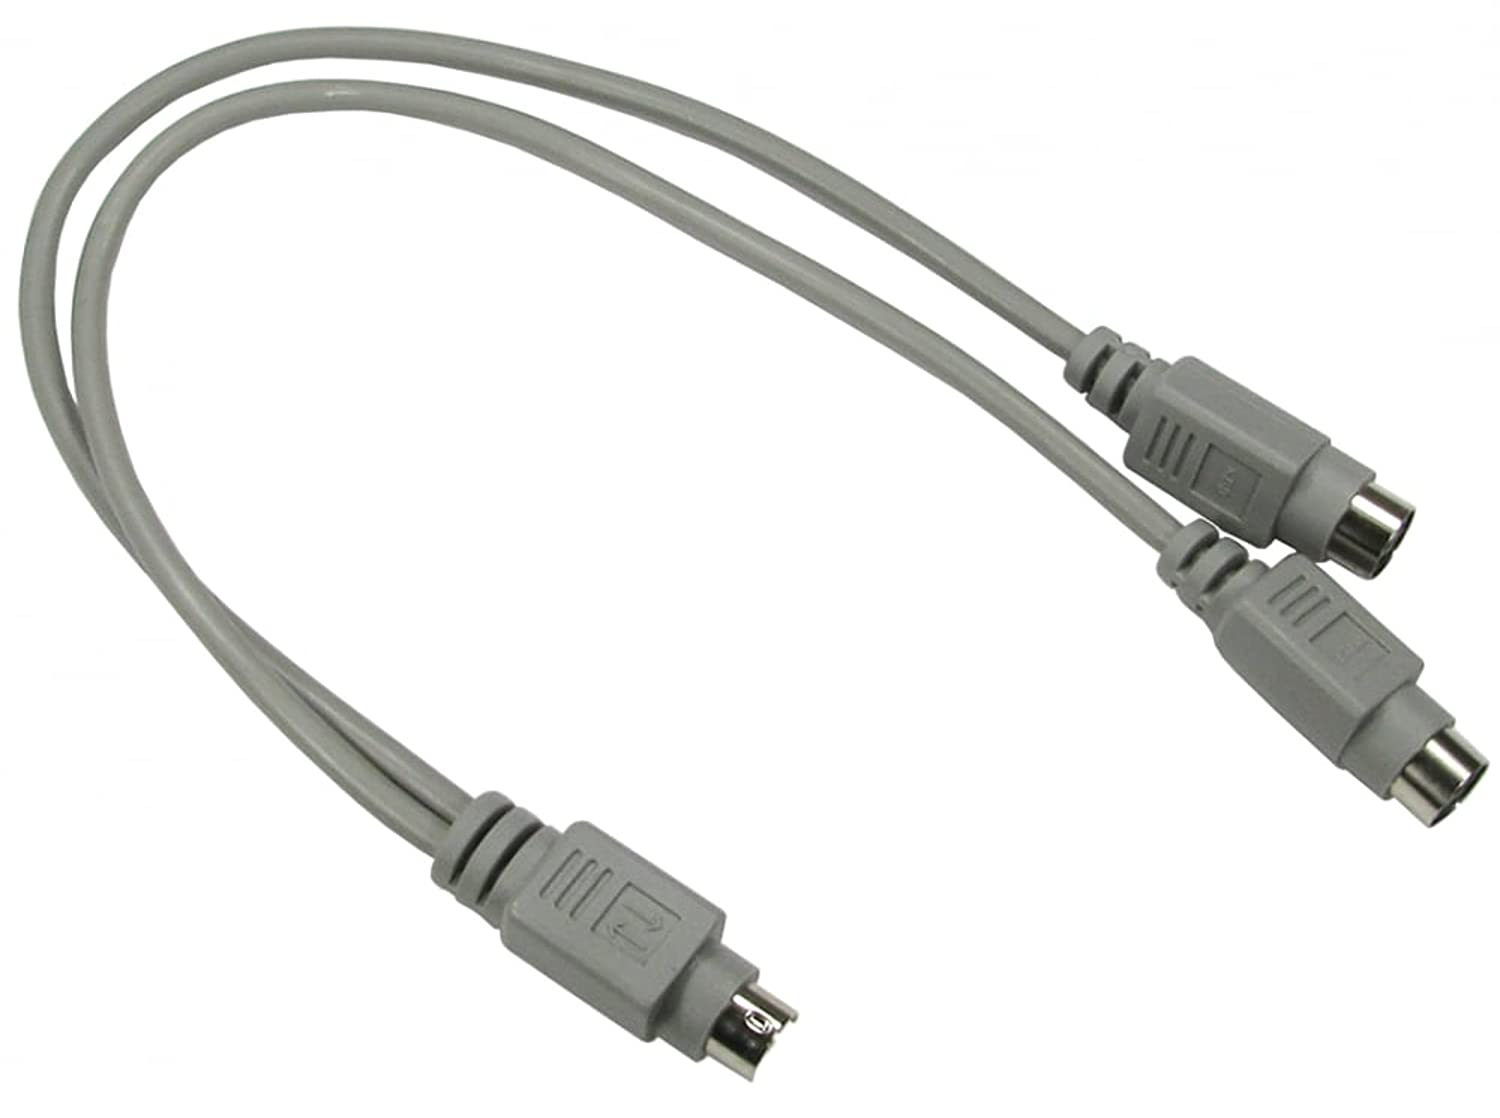 rhinocables® Ps2 PS/2 keyboard mouse splitter cable lead Wire Y Splitter - 1 Male to 2 female